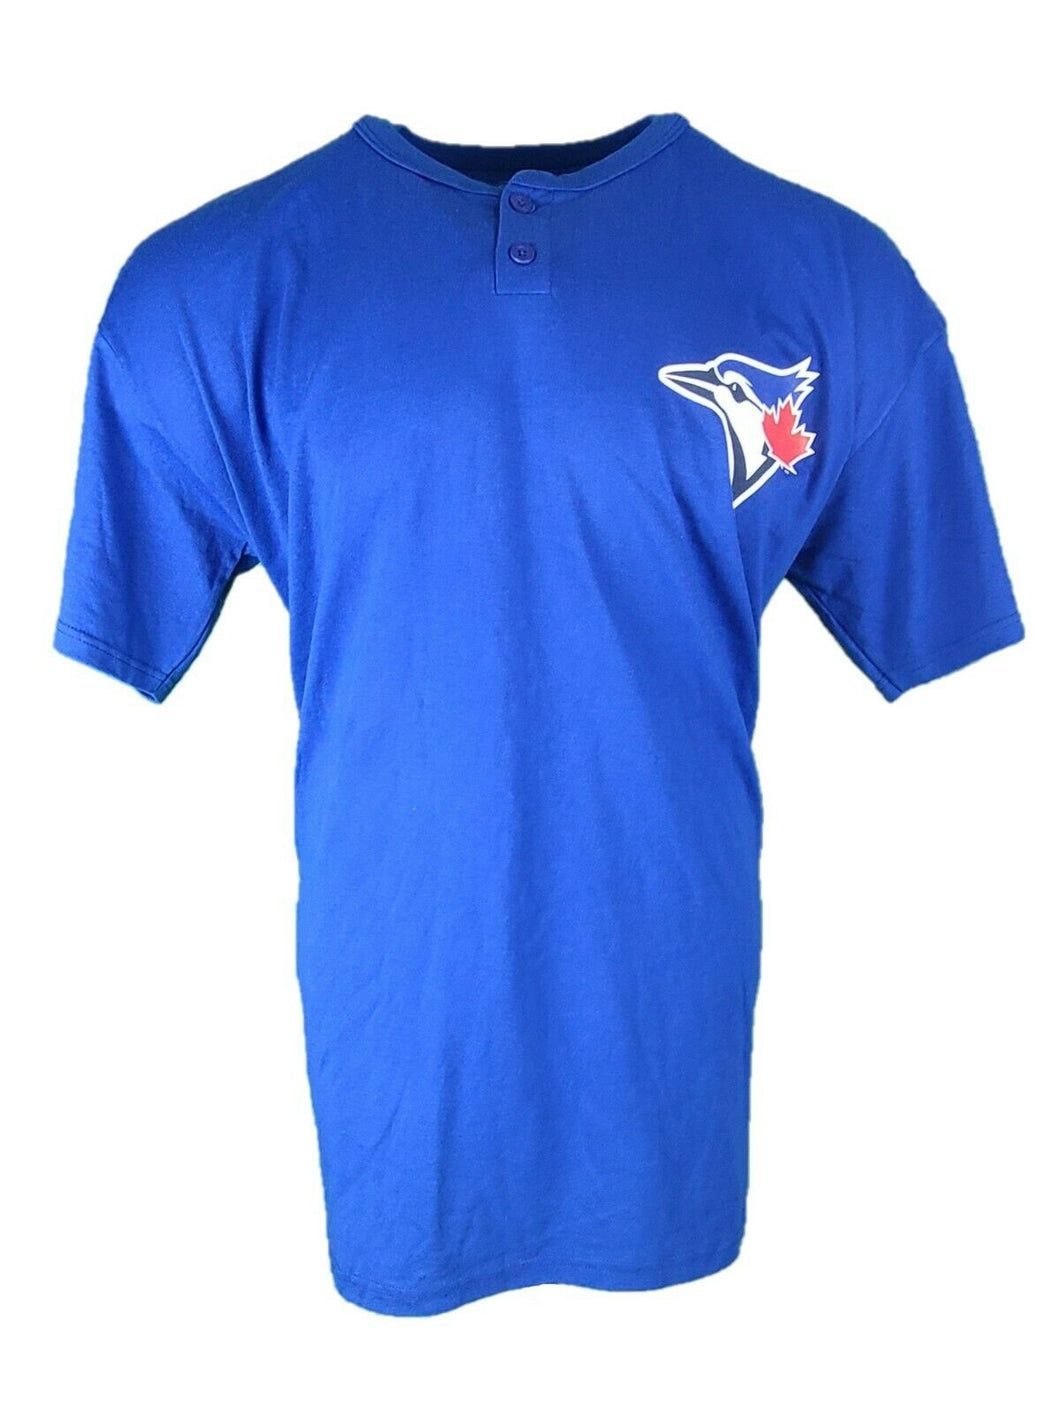 New Majestic Toronto Blue Jays MLB Short Sleeve Mens Graphic Button Henley Tee